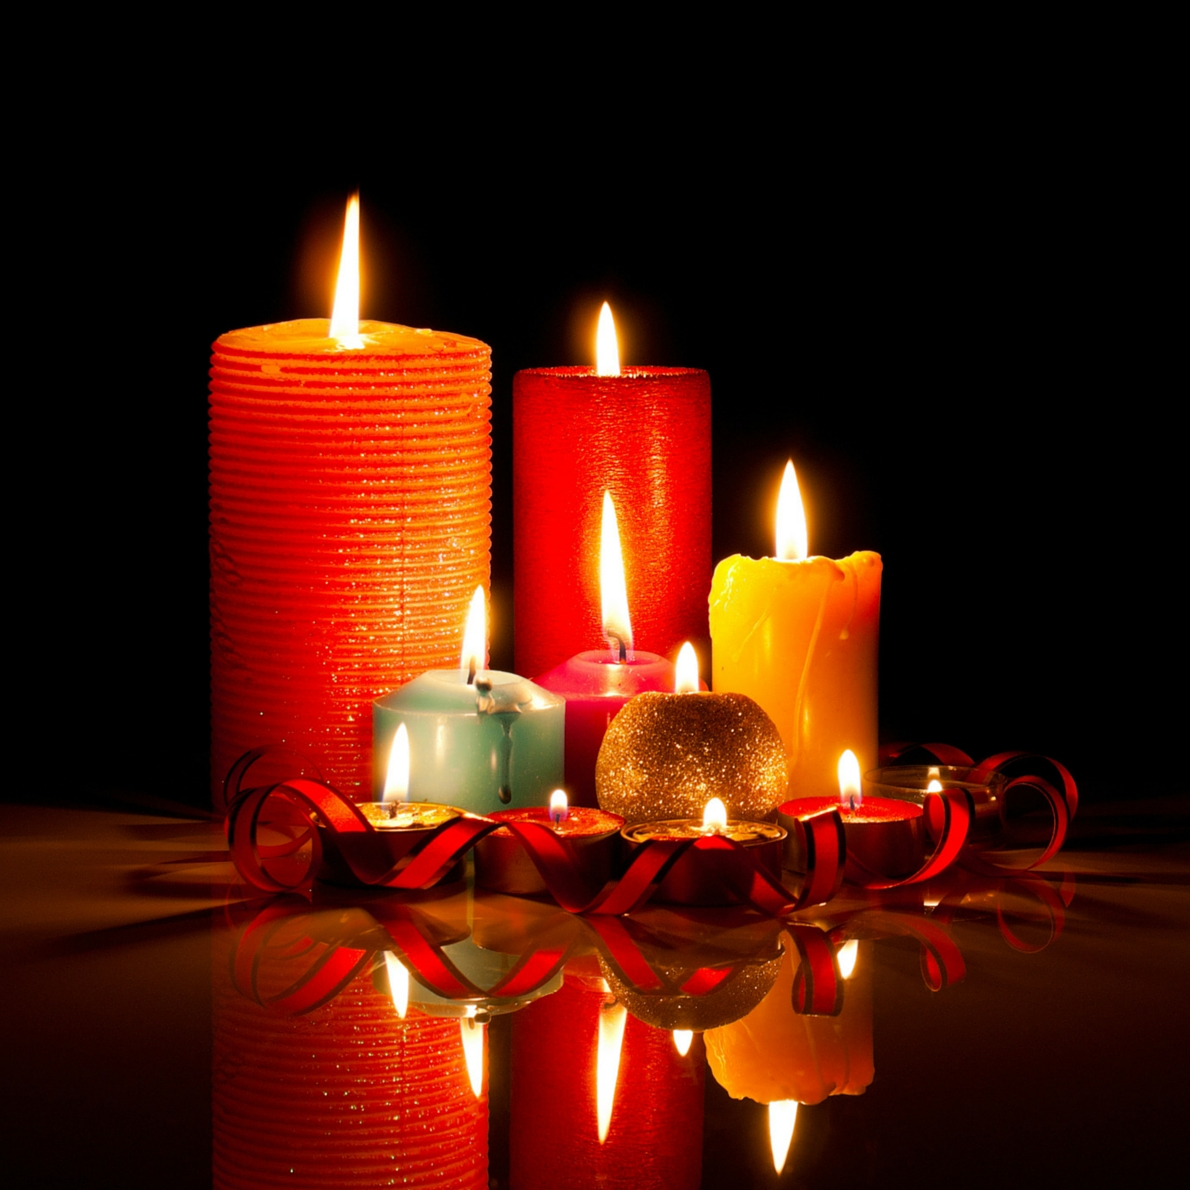 Candle Colors: What Are Their Meanings and Uses?